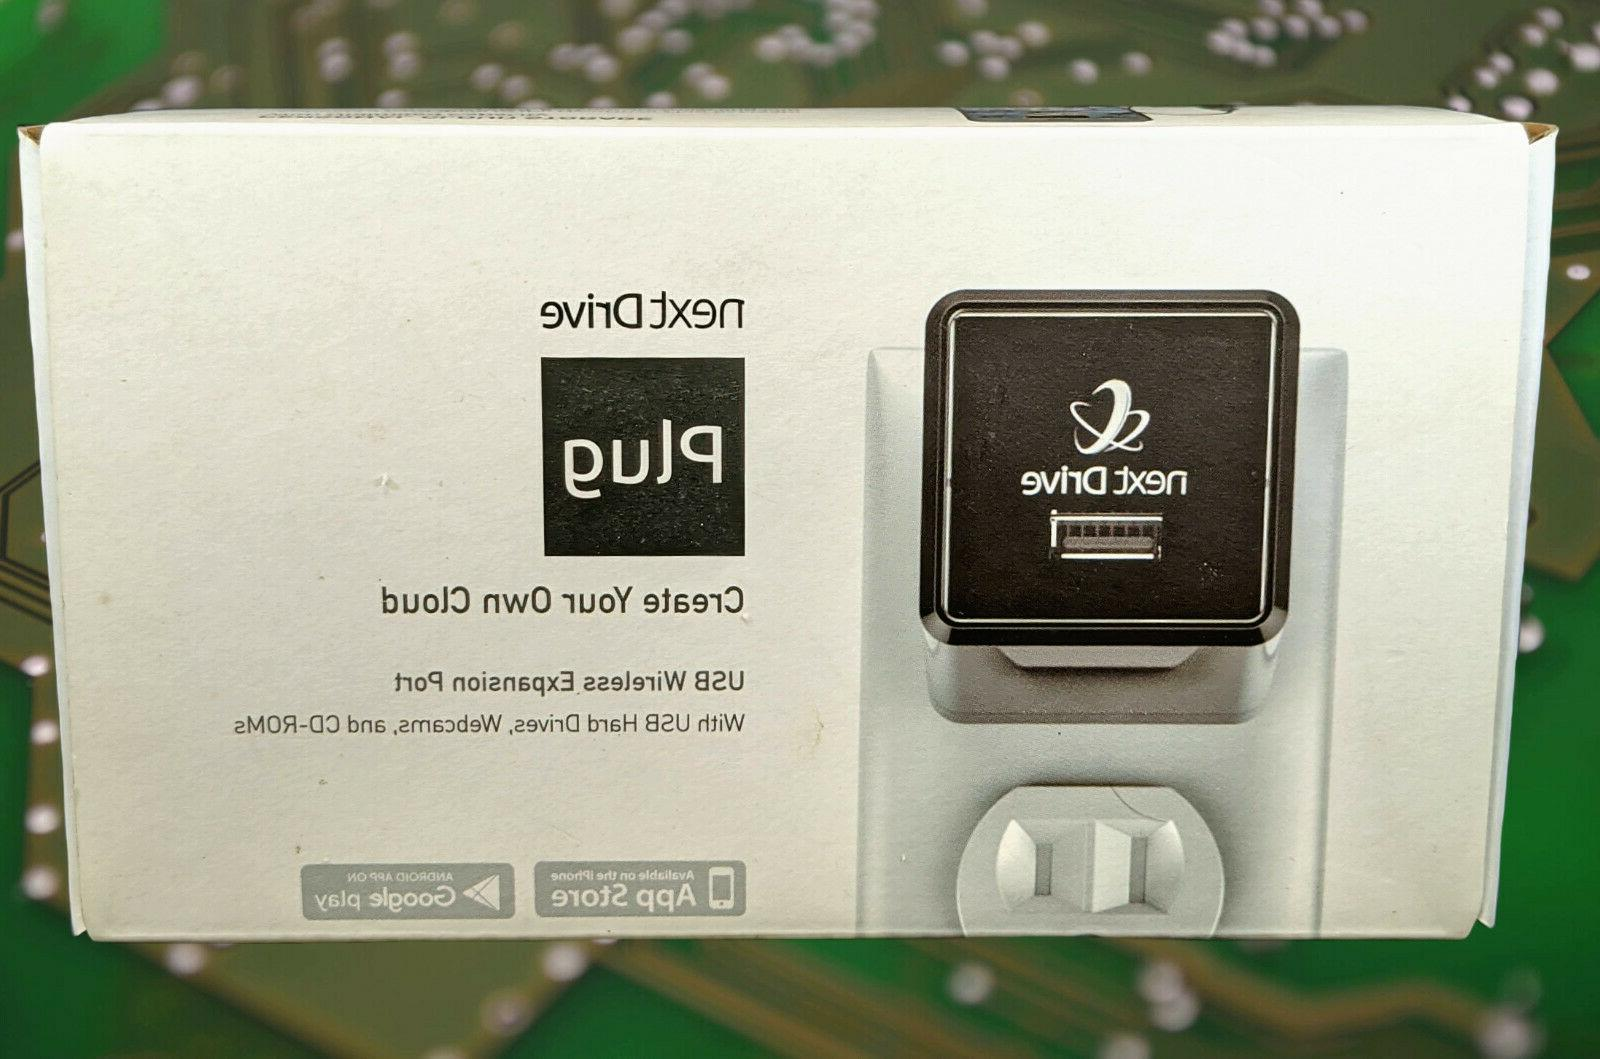 plug usb wireless expansion port for usb